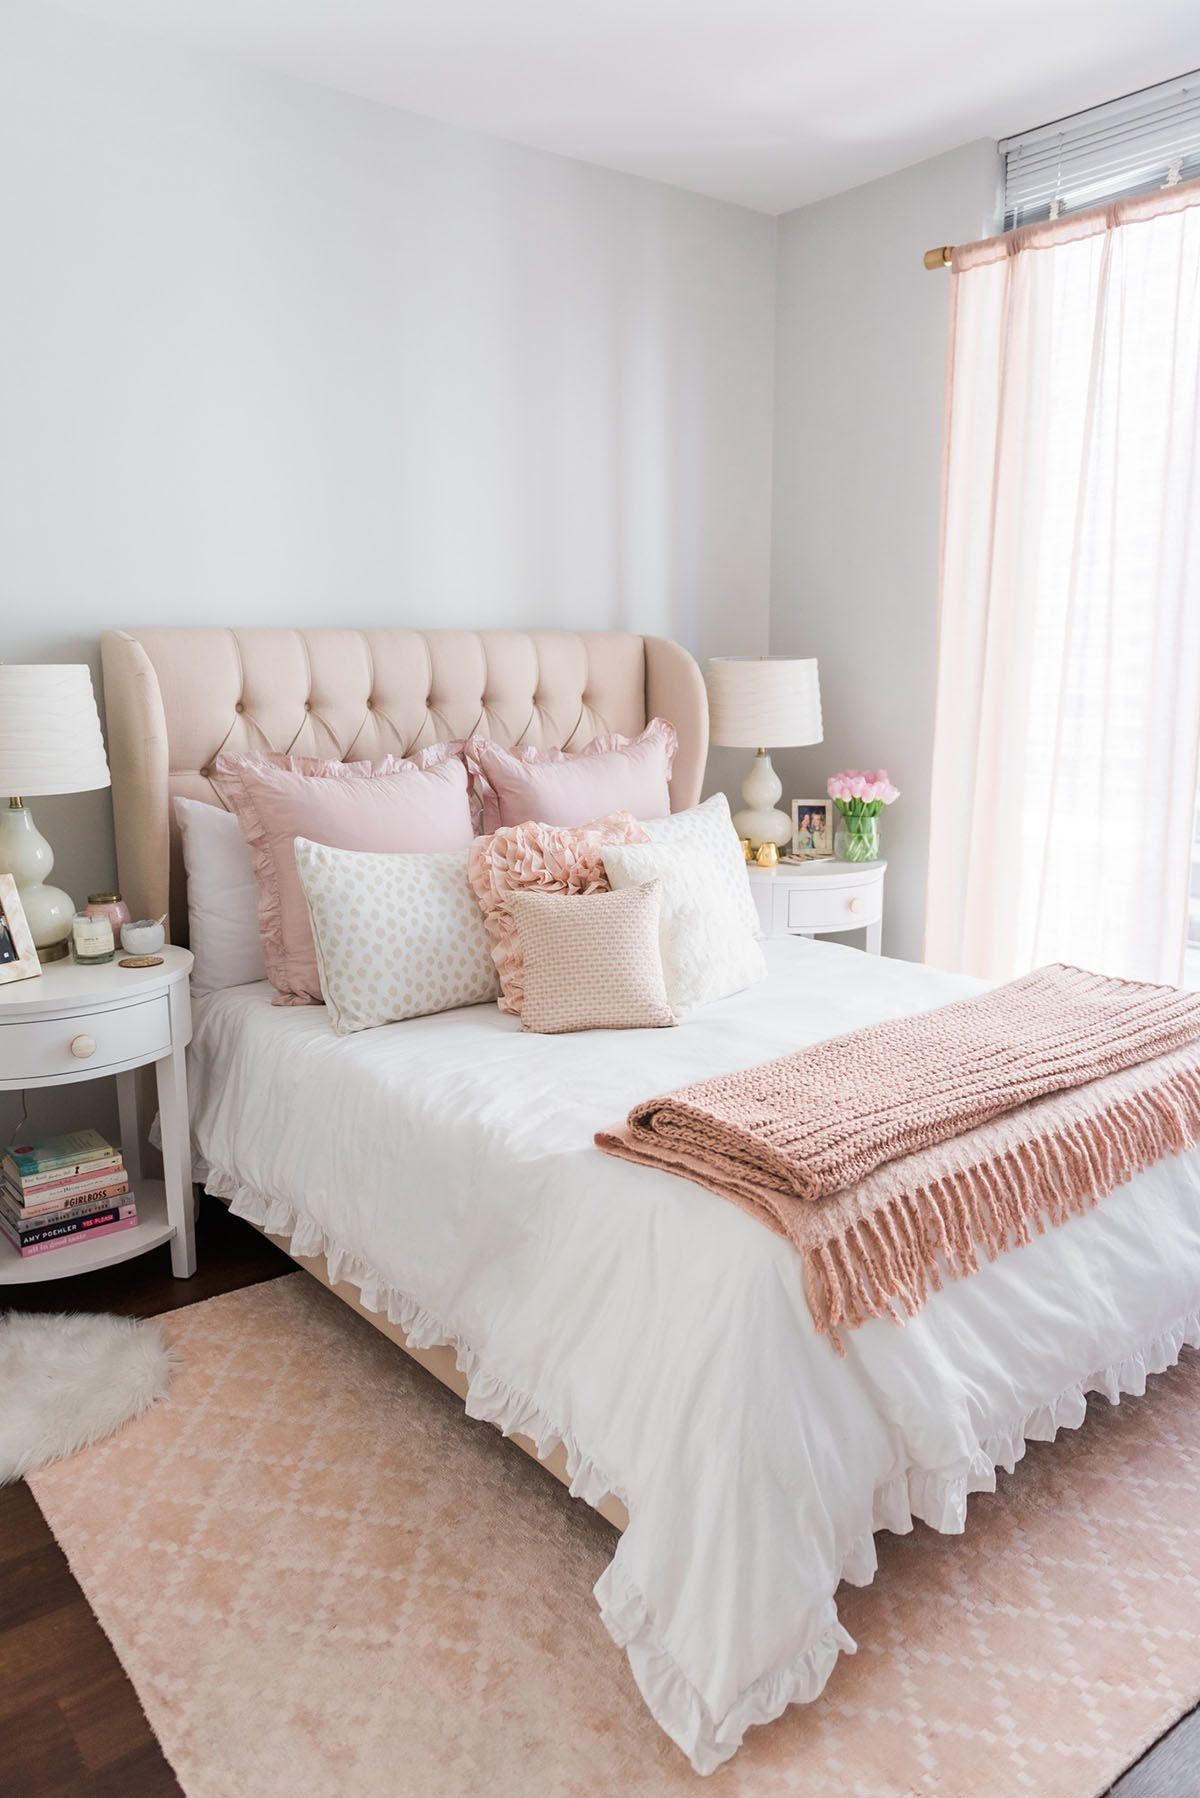 Blogger Jessica Sy Of Bows Sequins Shares Her Chicago Parisian Chic Bedroom Design Tufted Headboard Blush Pink Rug And White Ruffled Bedding